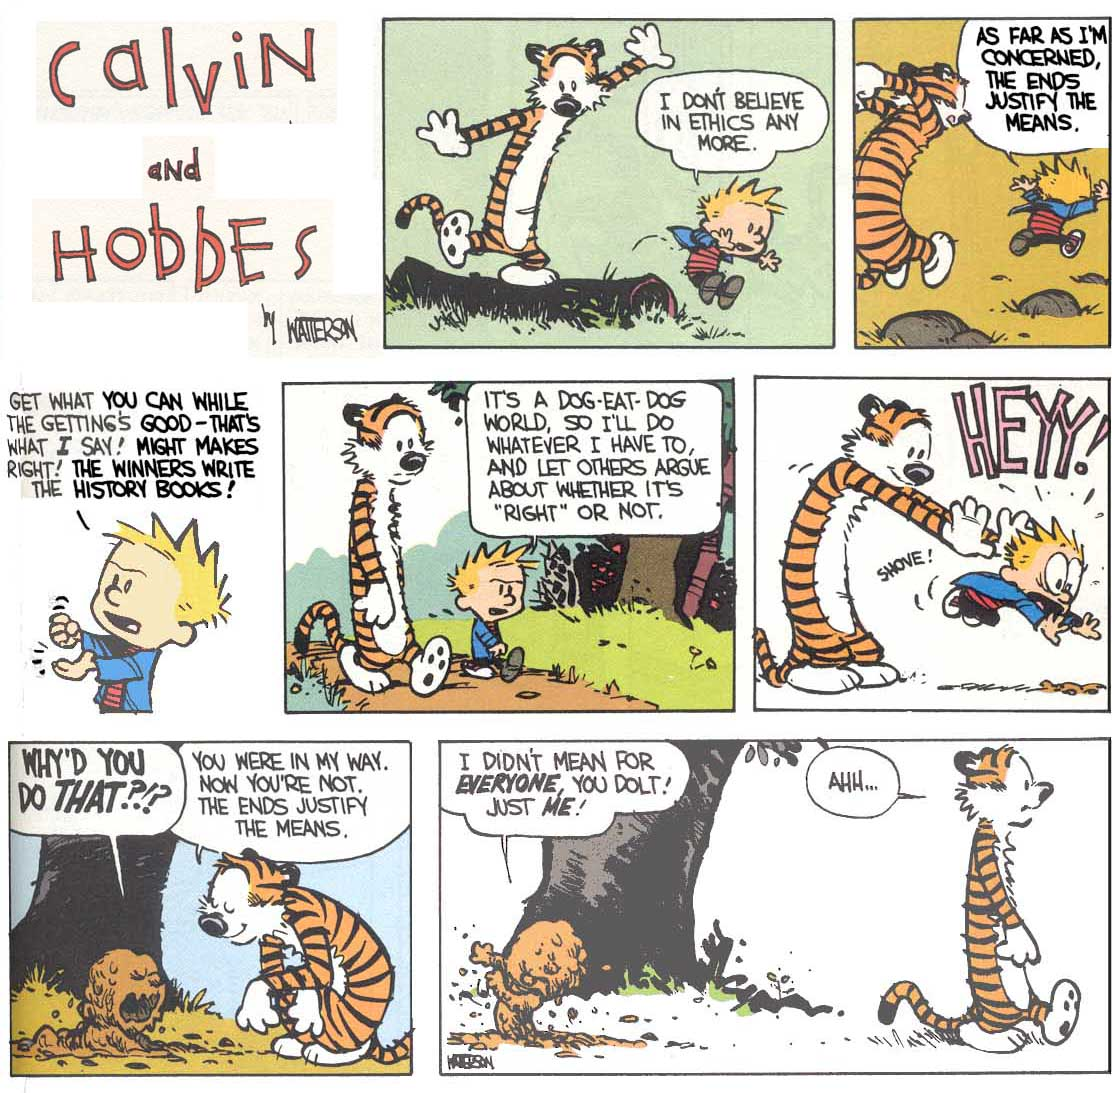 phil social ethics lawrence m hinman ph d calvin hobbes and kant